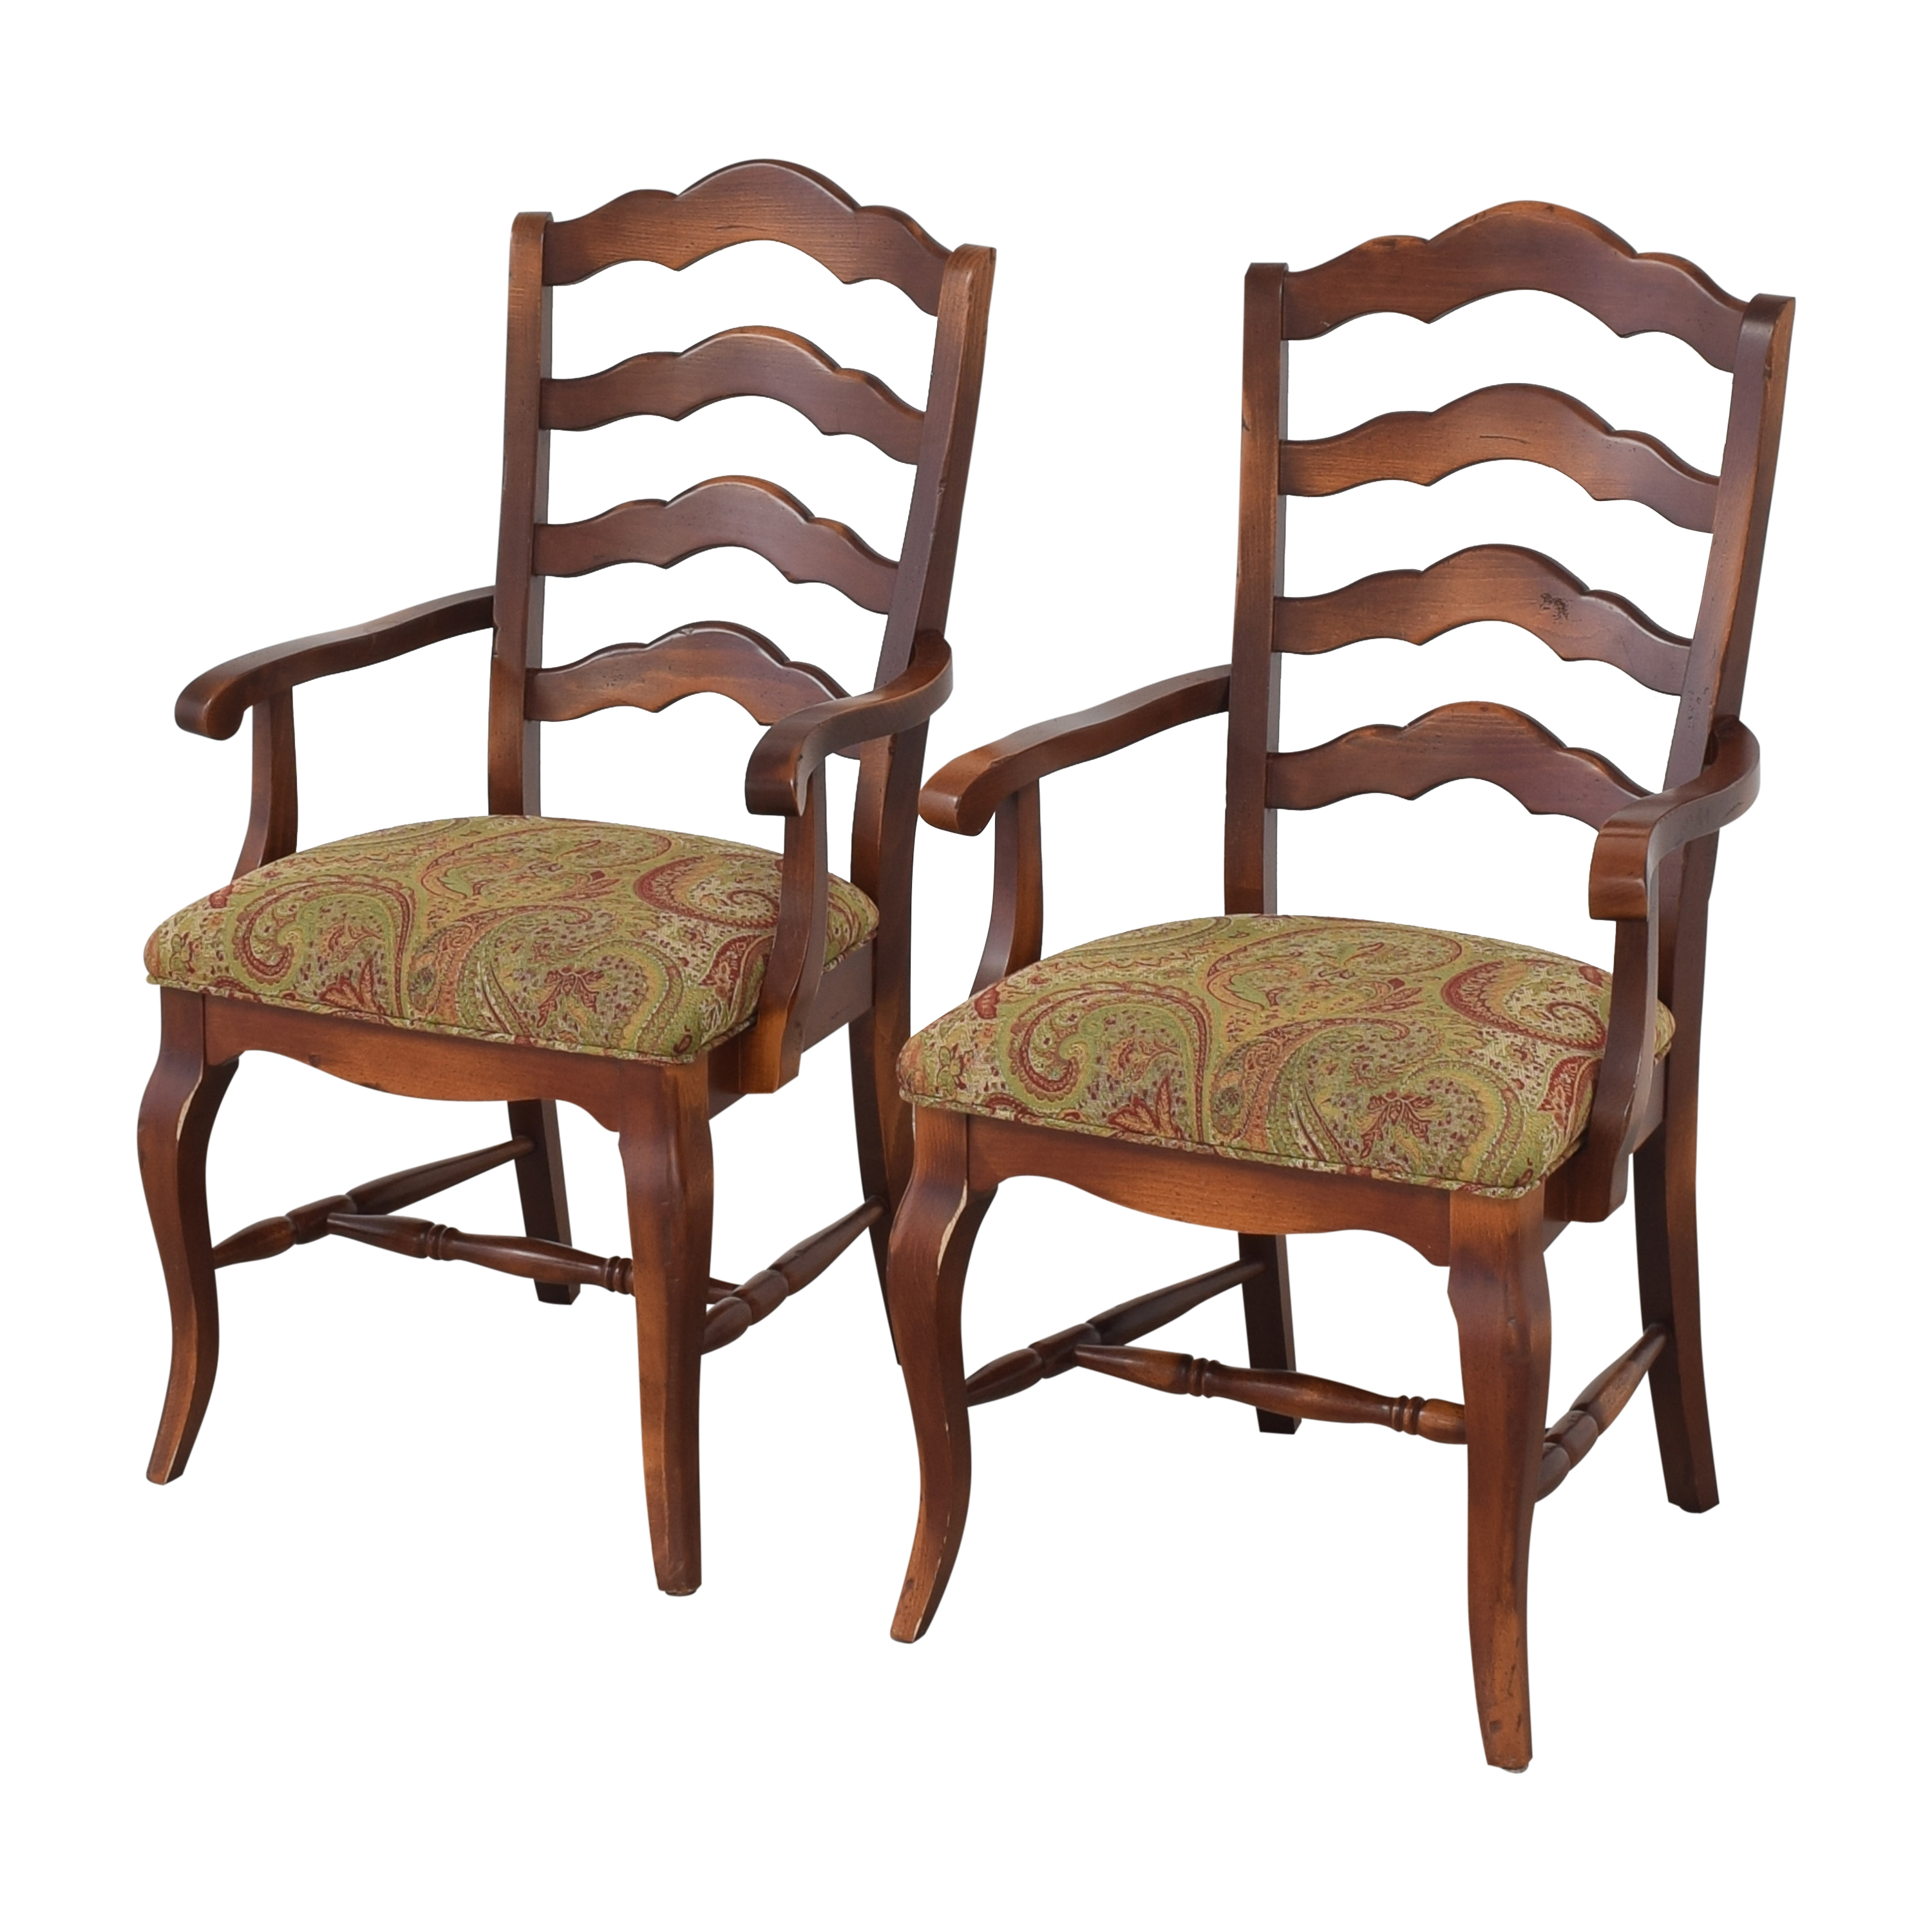 Saloom Saloom Model 35 Upholstered Dining Arm Chairs second hand